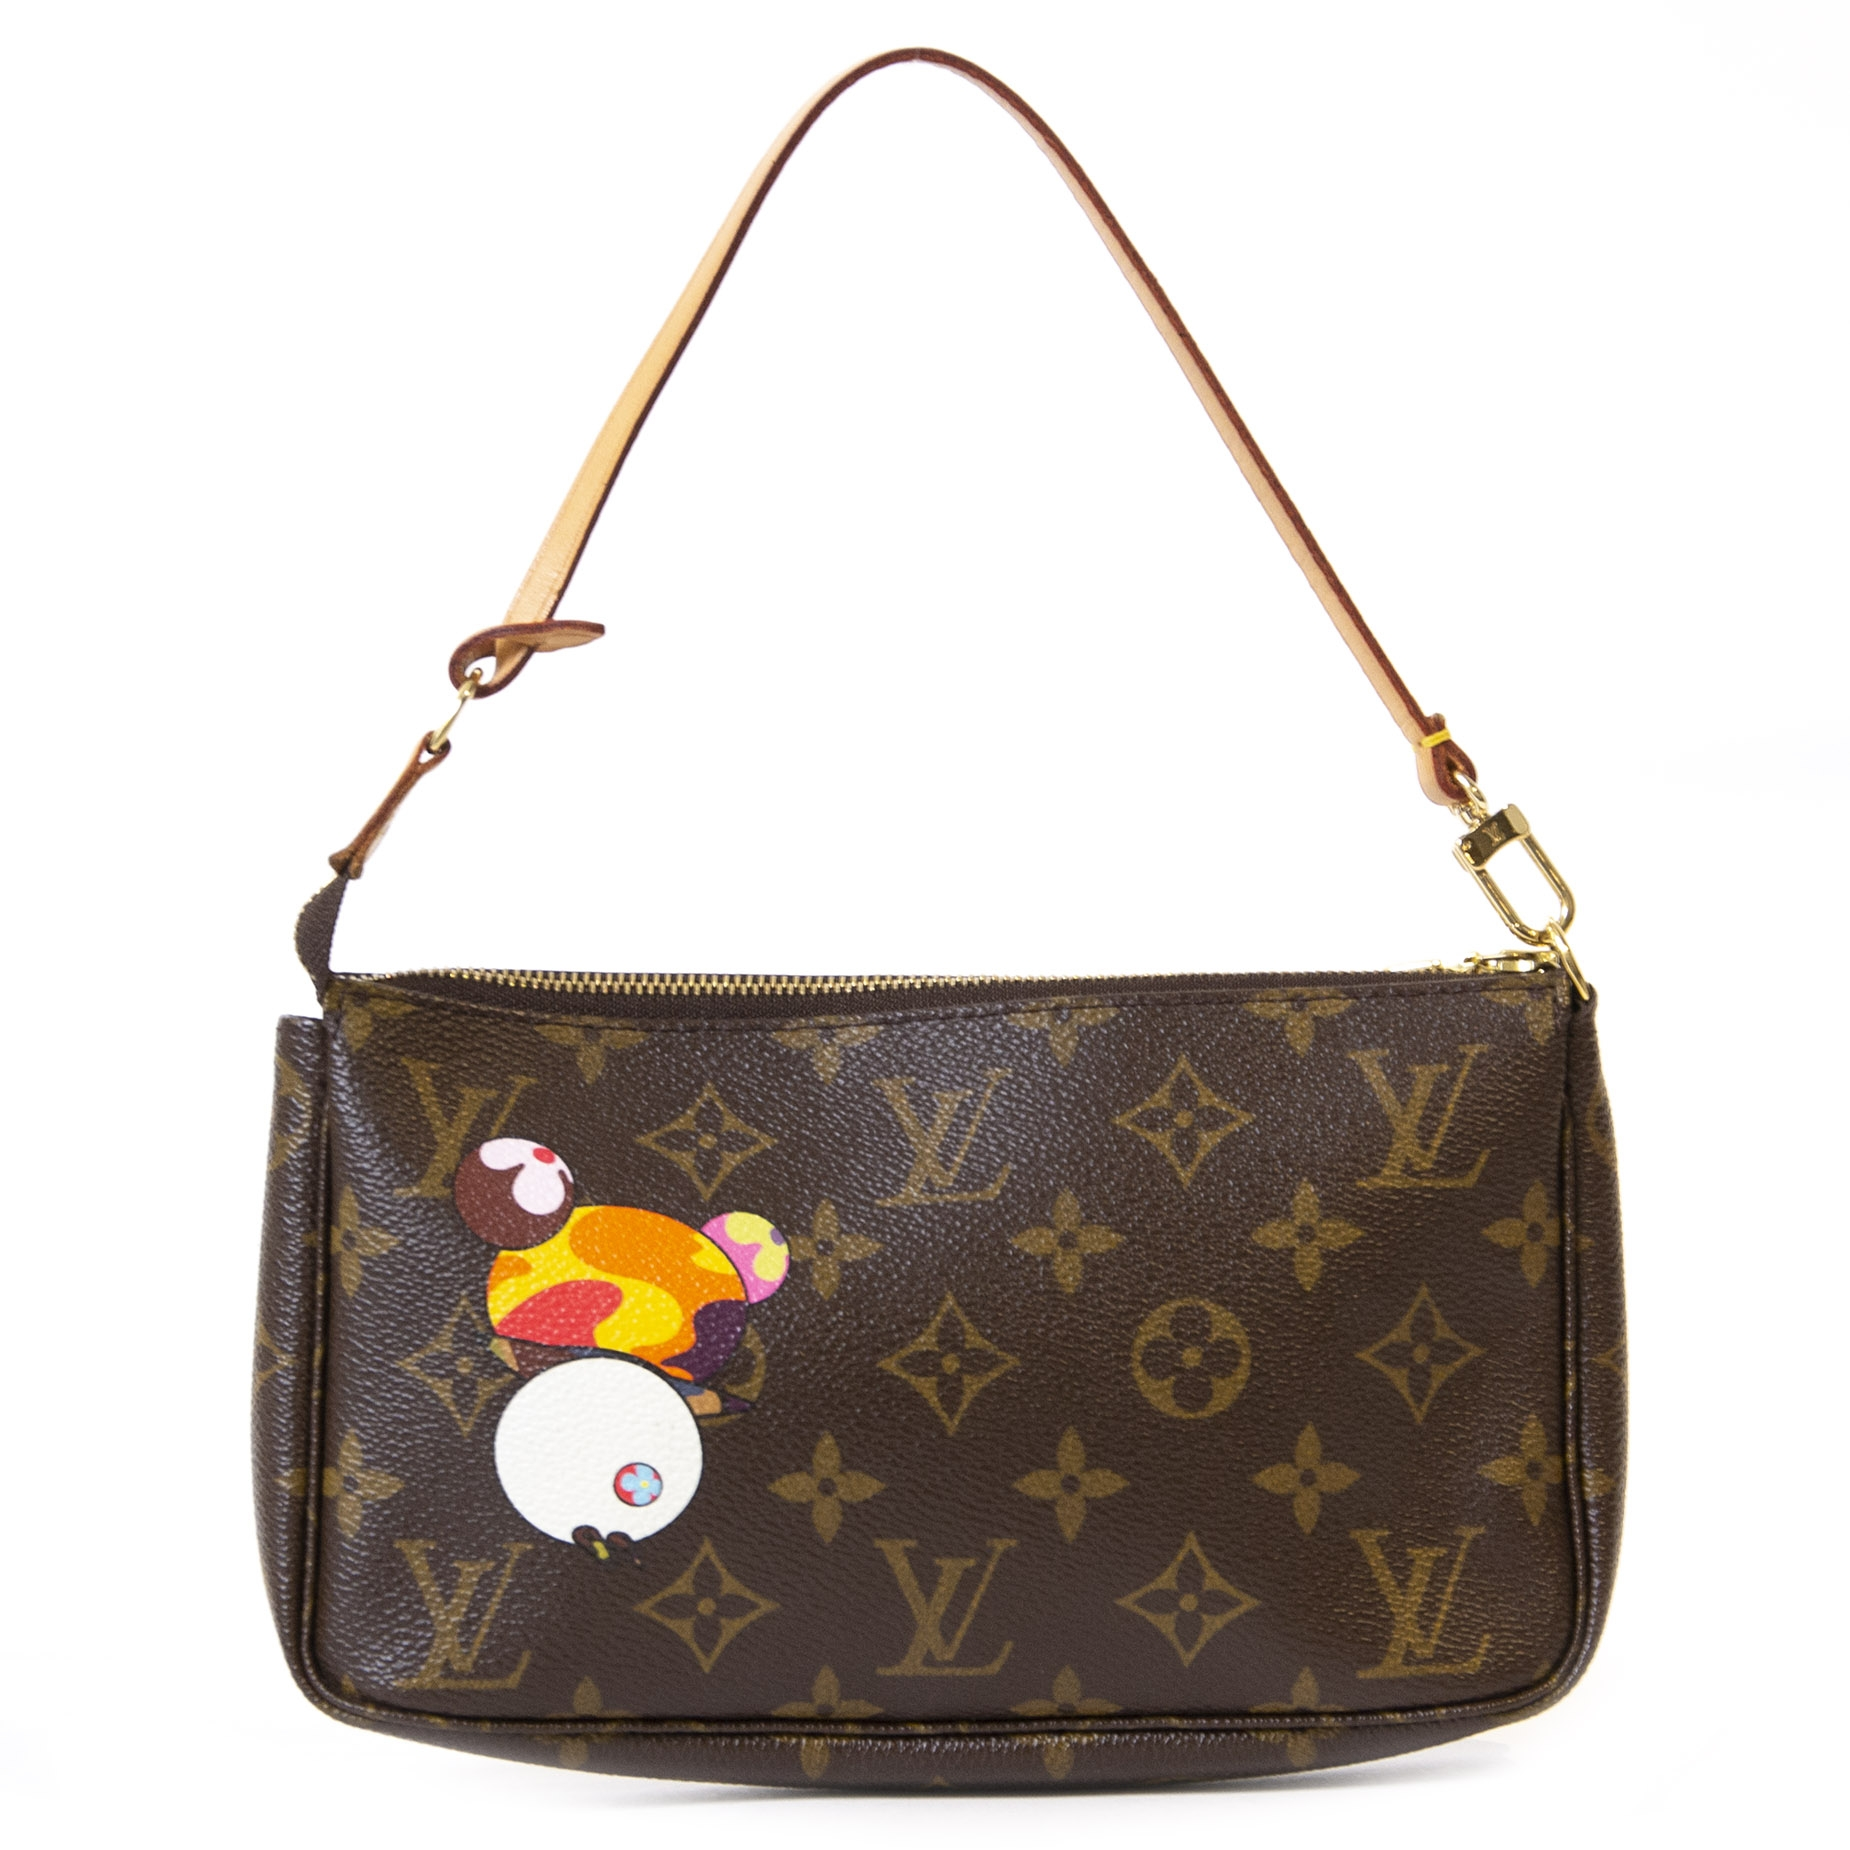 Authentieke Tweedehands Louis Vuitton Monogram Limited Edition Murakami Panda Pochette Bag juiste prijs veilig online winkelen luxe merken webshop winkelen Antwerpen België mode fashion